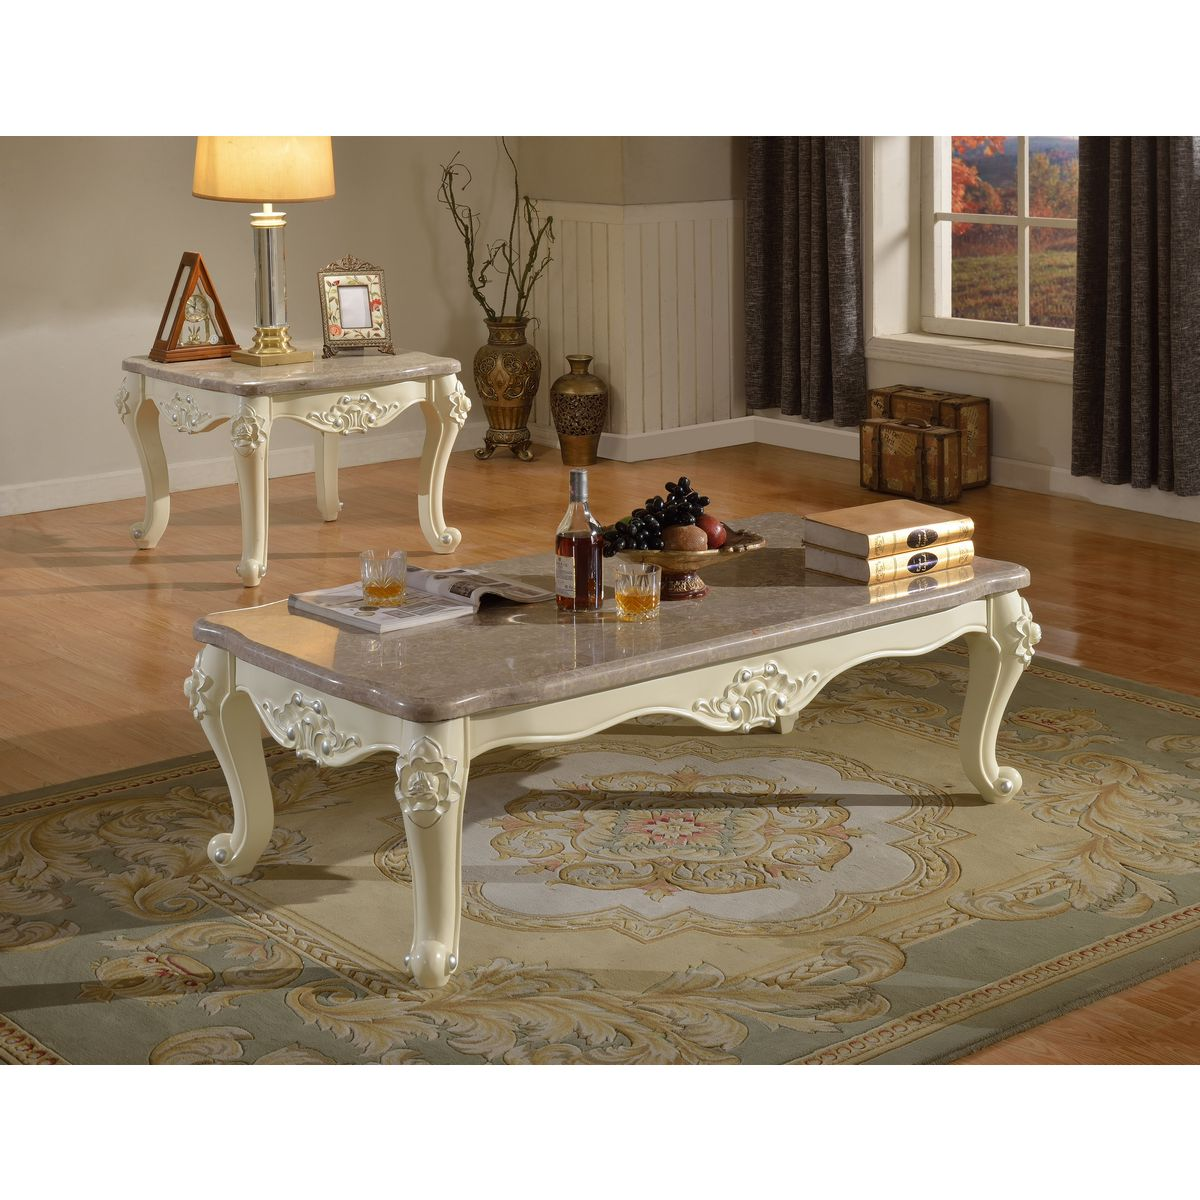 Meridian furniture 274 e madrid end table in rich pearl white meridian furniture madrid end table in rich pearl white silver w ornate carving marble top geotapseo Gallery